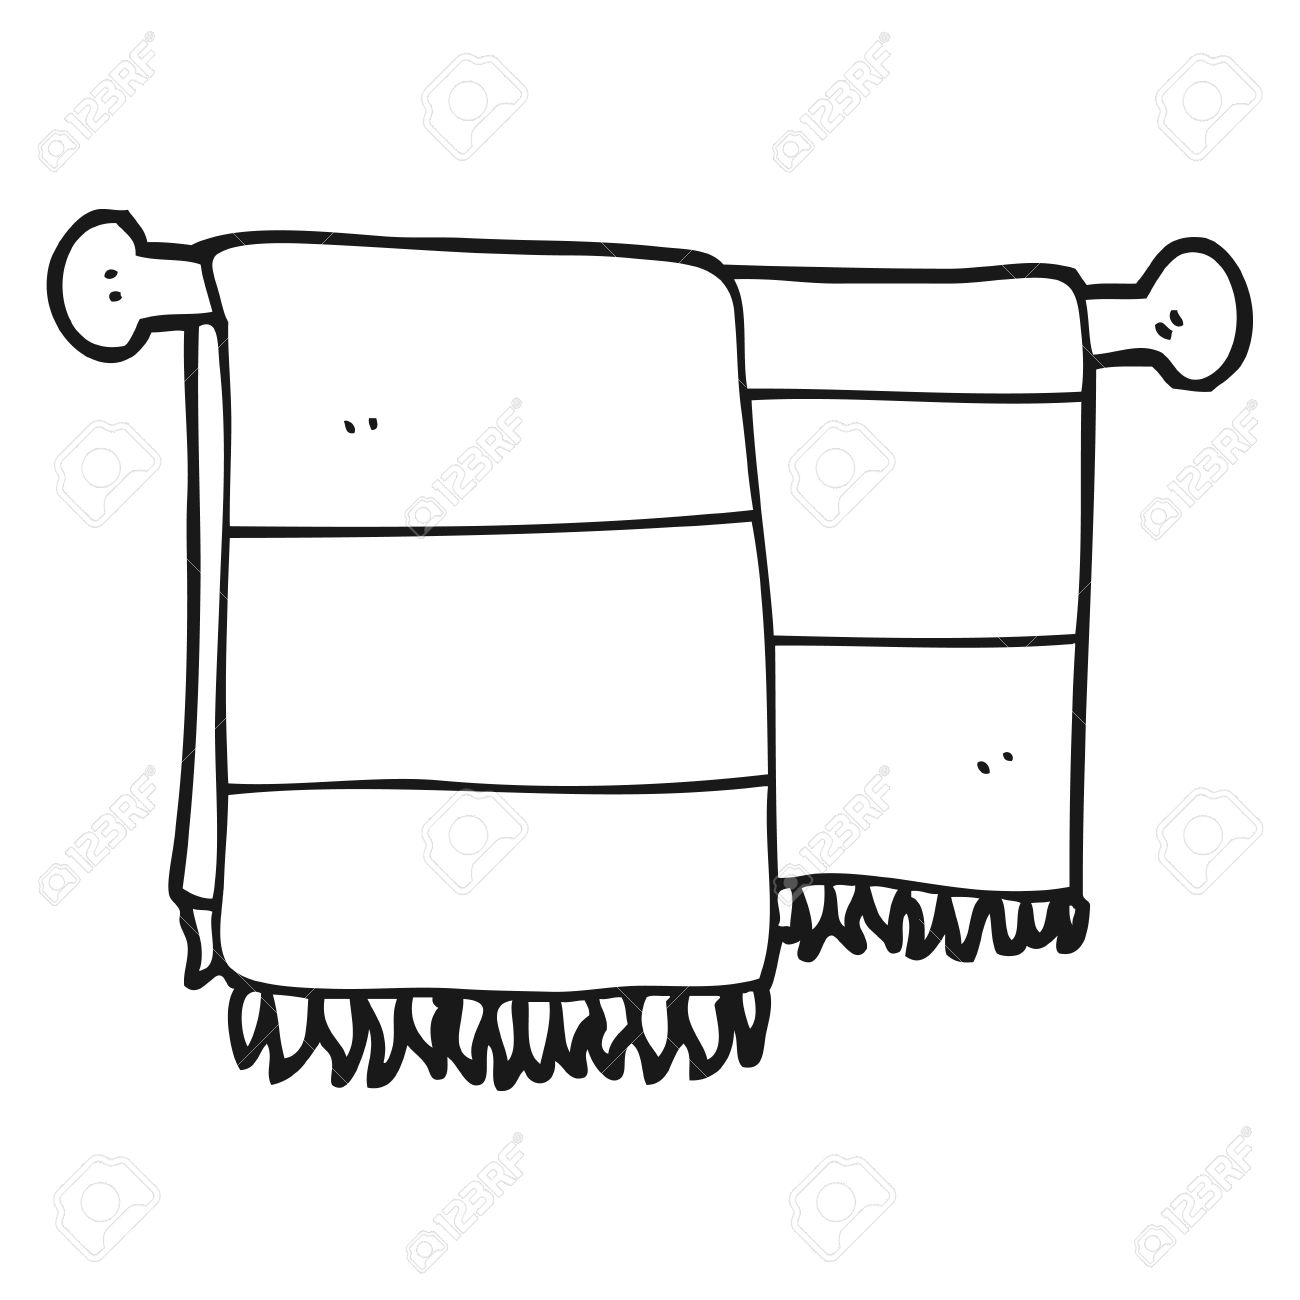 Free Towels Cliparts, Download Free Clip Art, Free Clip Art on Clipart  Library